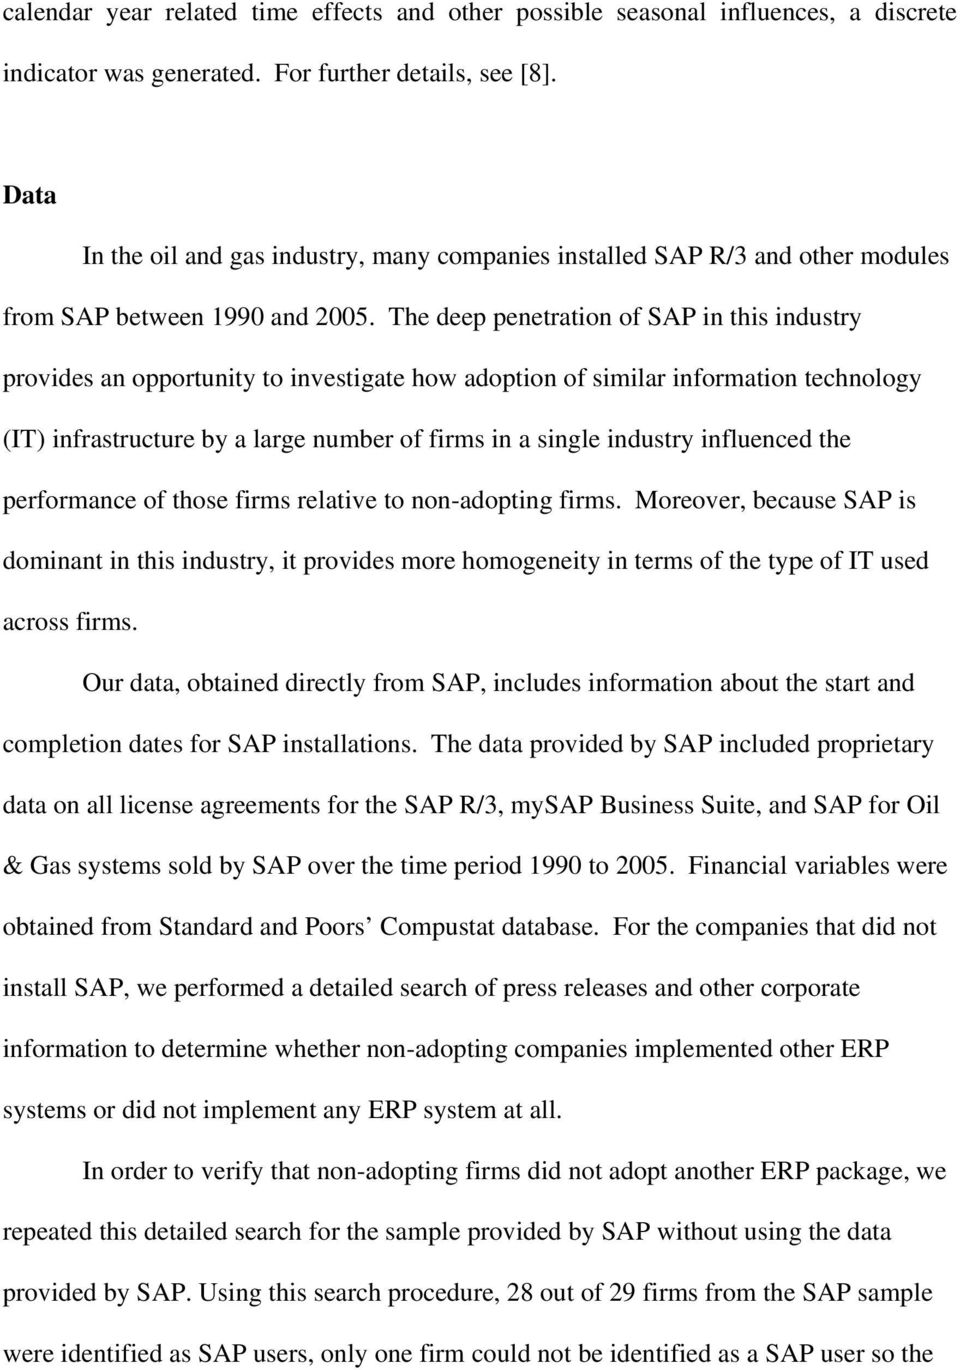 The deep penetration of SAP in this industry provides an opportunity to investigate how adoption of similar information technology (IT) infrastructure by a large number of firms in a single industry